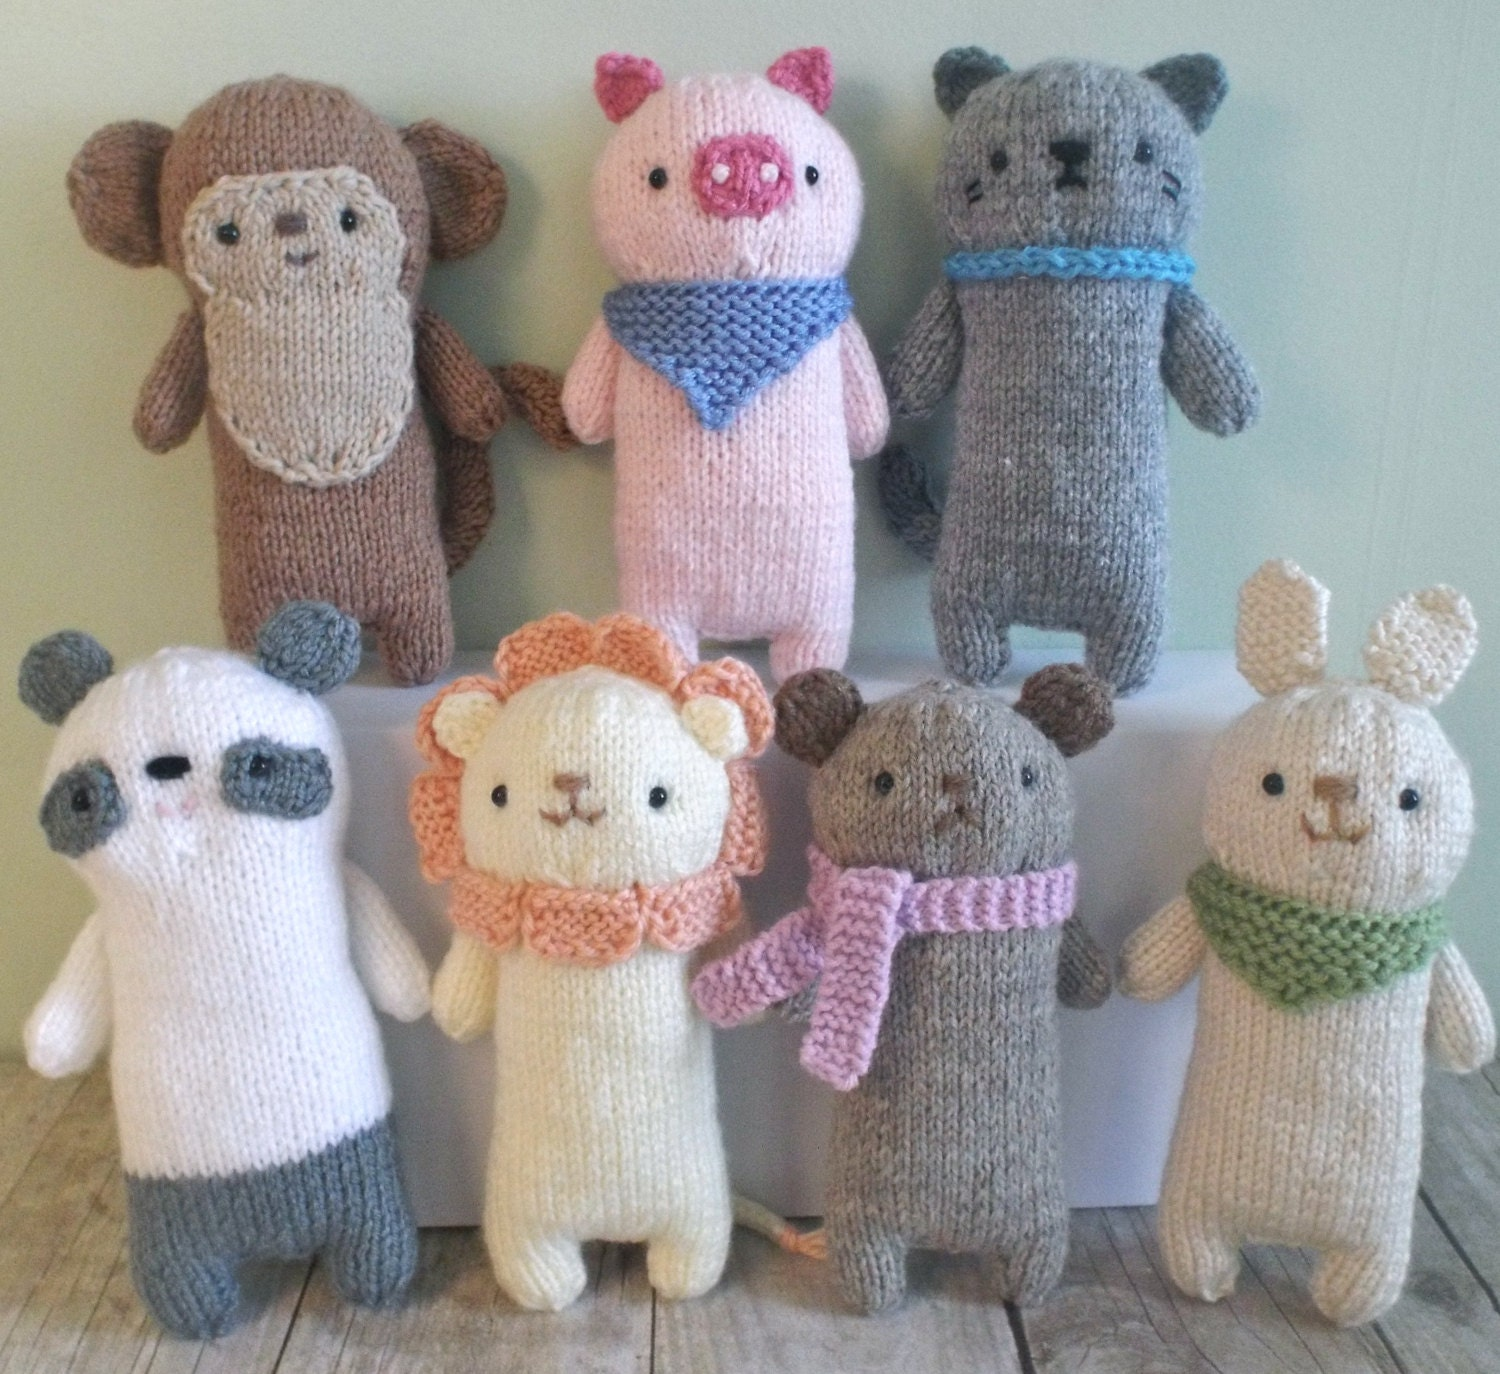 Amigurumi Knitted Animals : Amigurumi Knit Baby Animals Pattern Set Digital Download